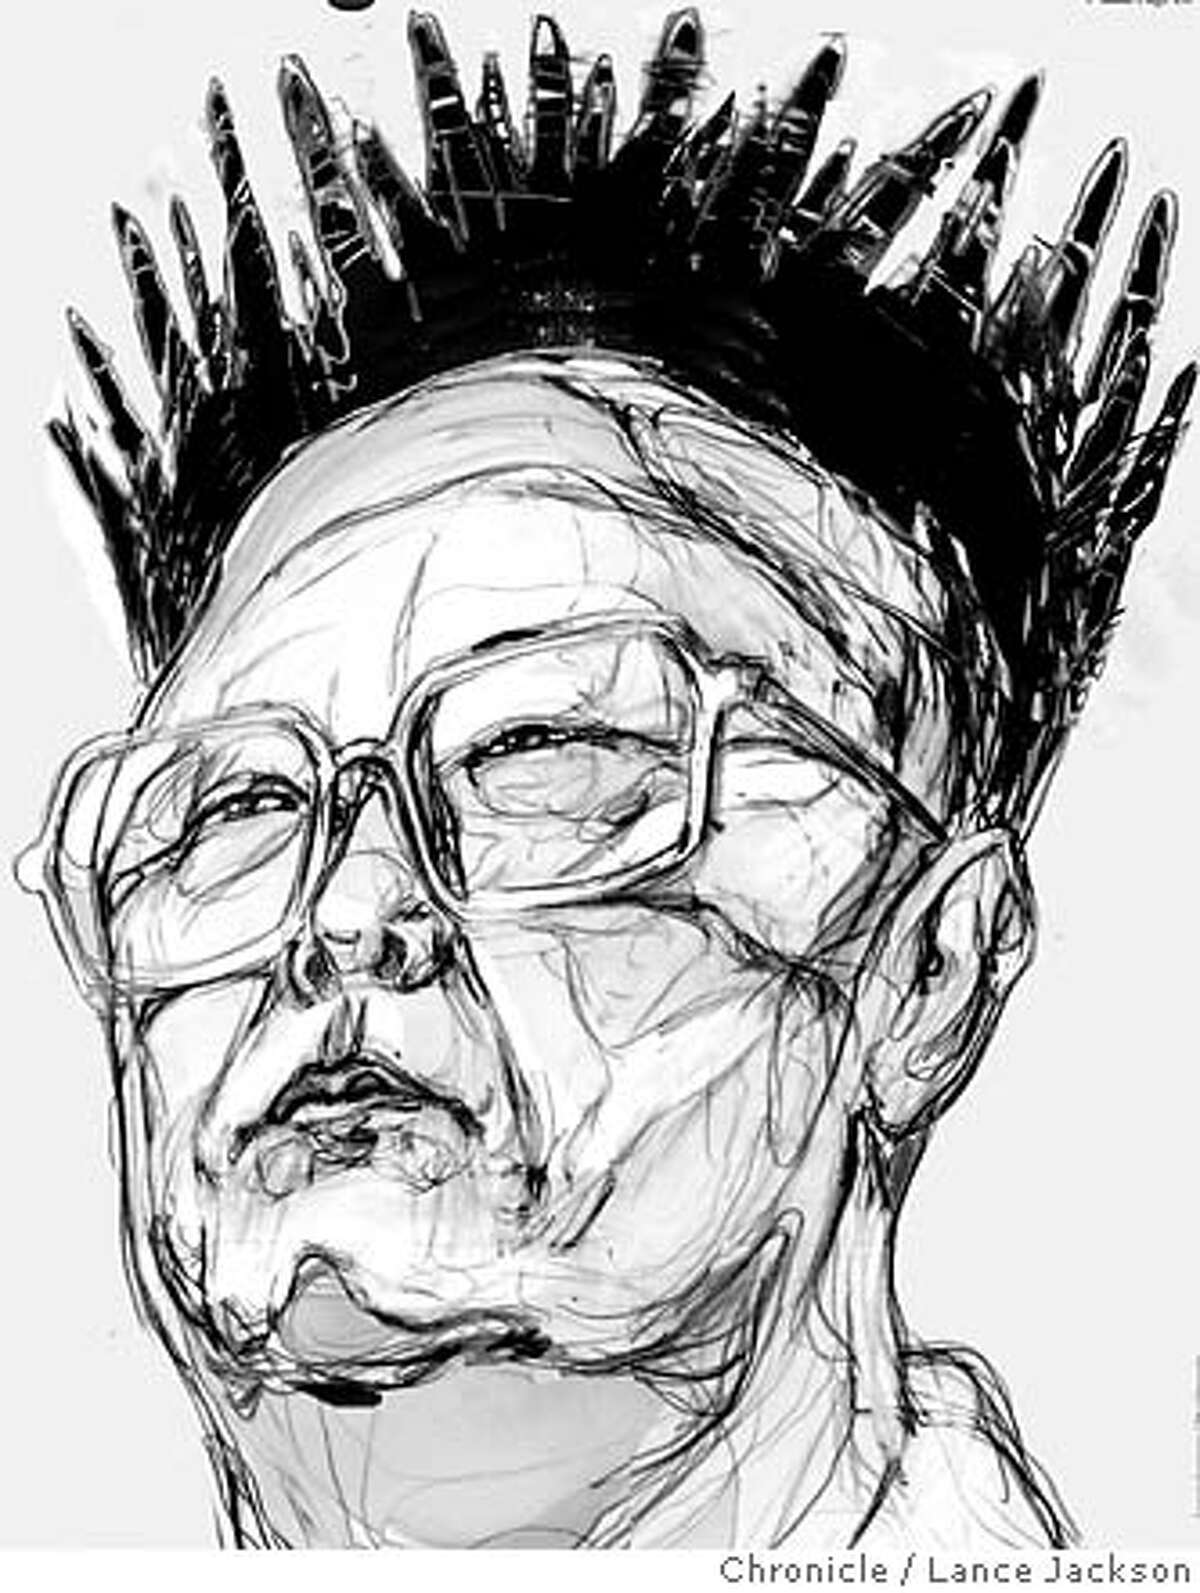 Kim Jong Il. Chronicle illustration by Lance Jackson